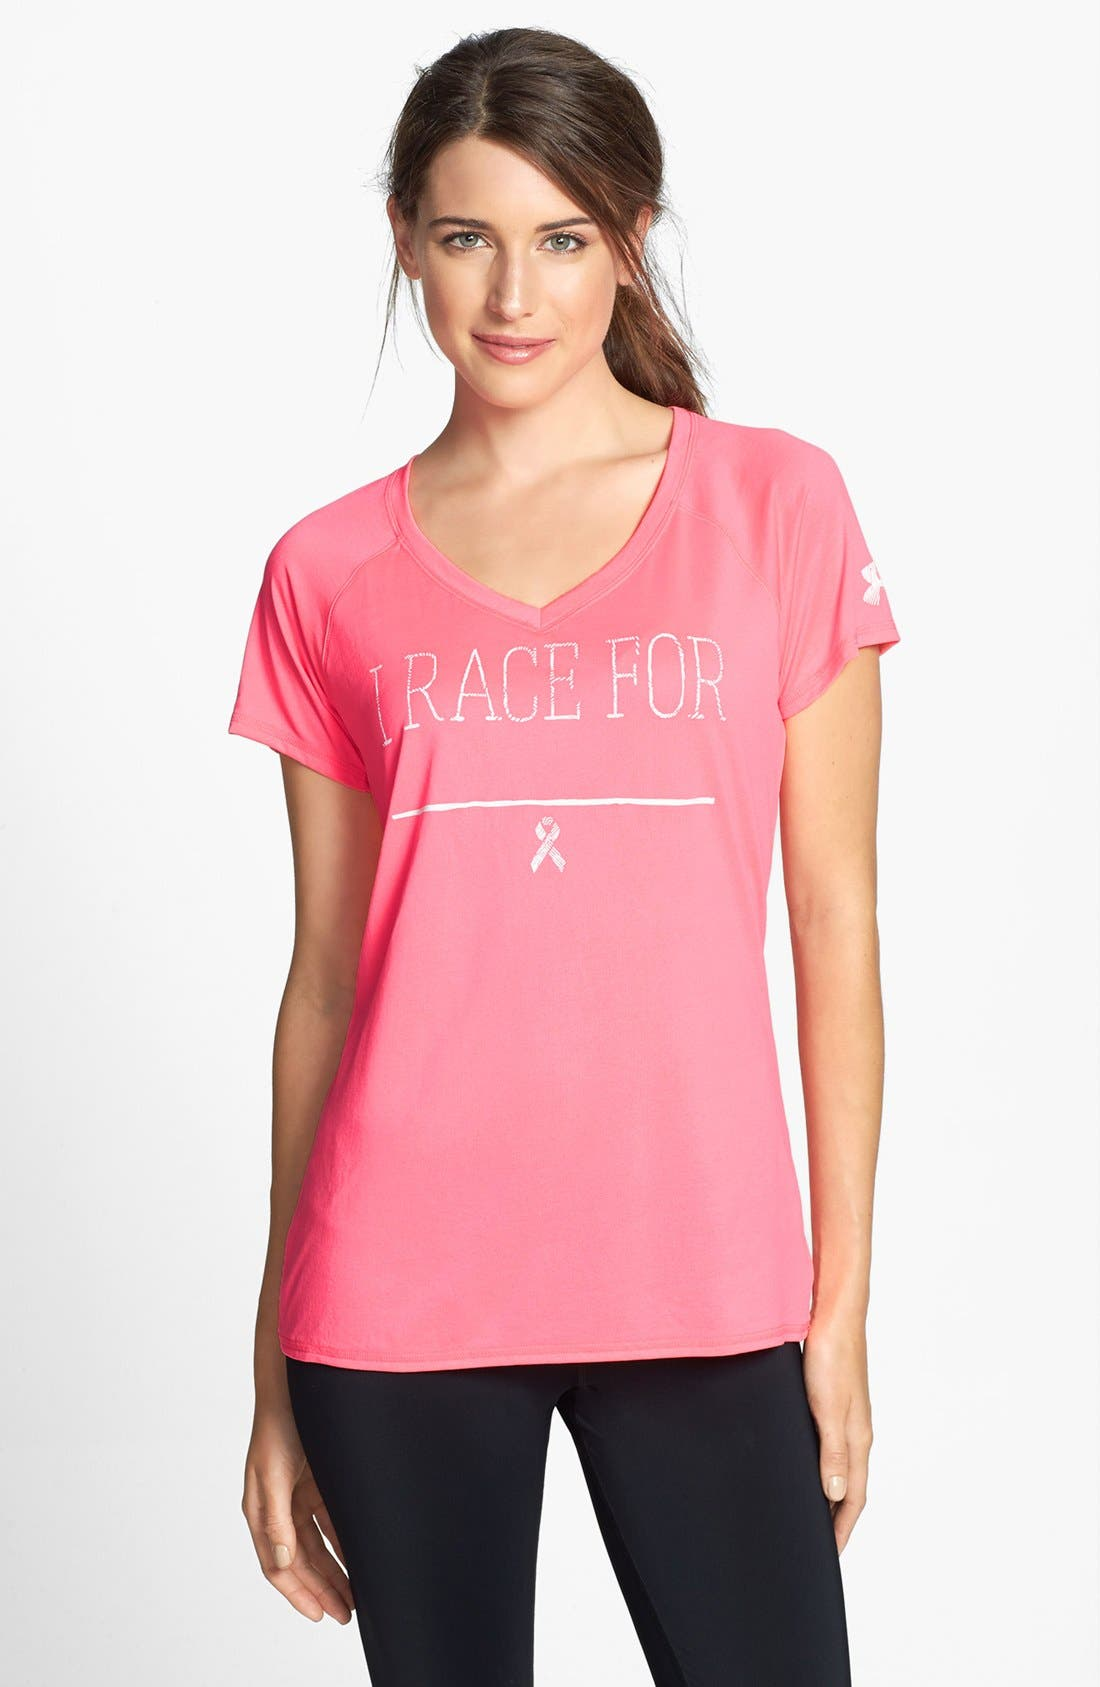 Main Image - Under Armour 'I Race For' Power in Pink® Tee